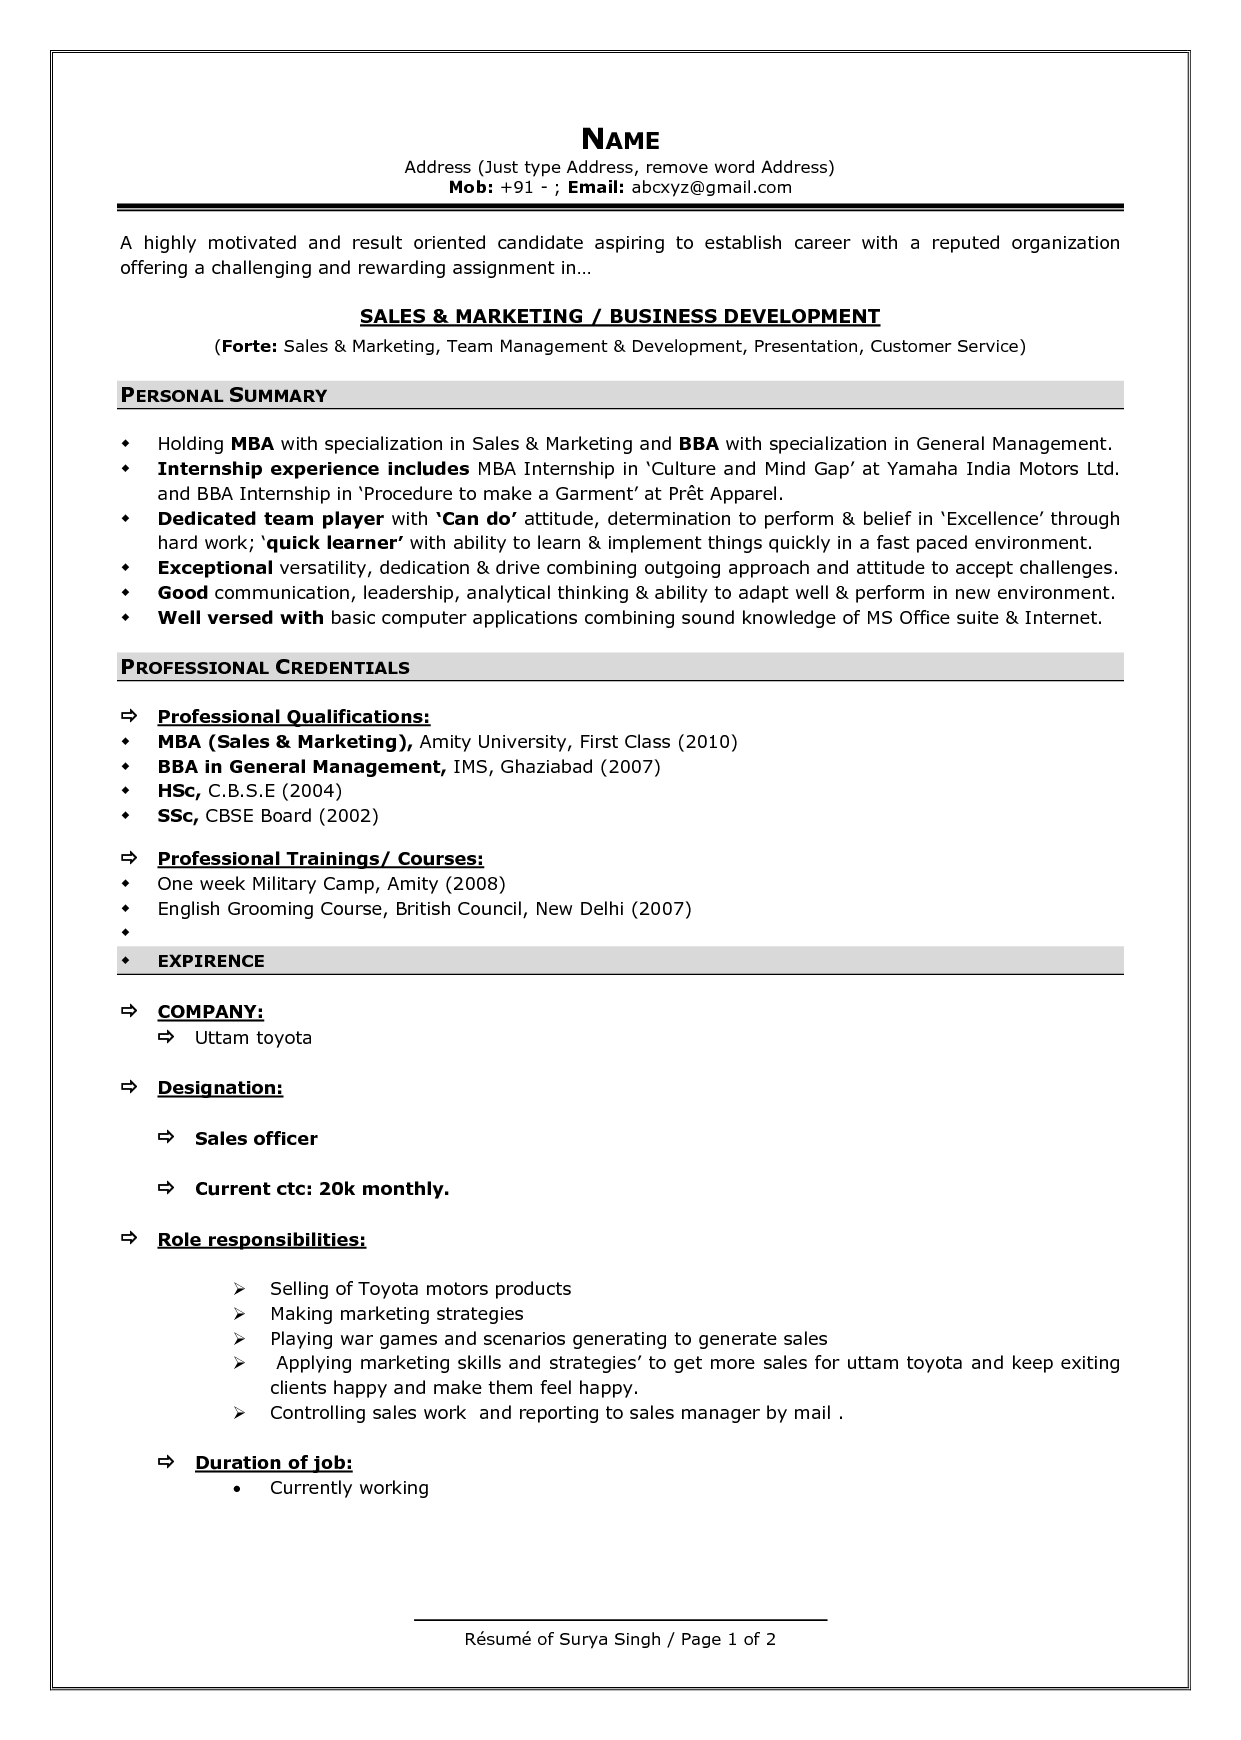 221.png (1241×1740) - Resume PNG